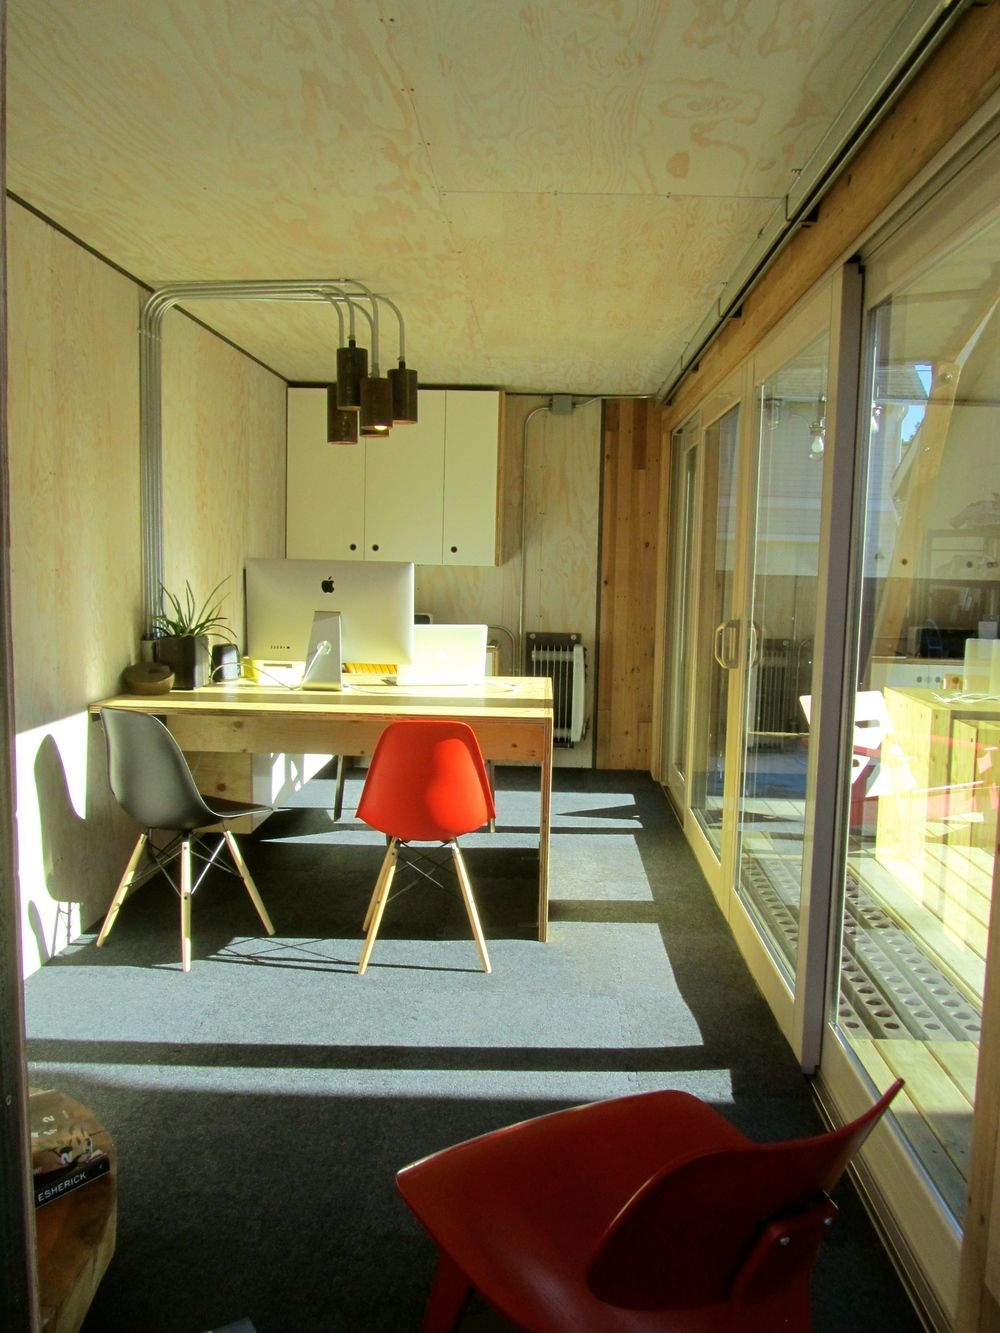 Shipping Container Office Interior Plywood Clad Walls And Desks